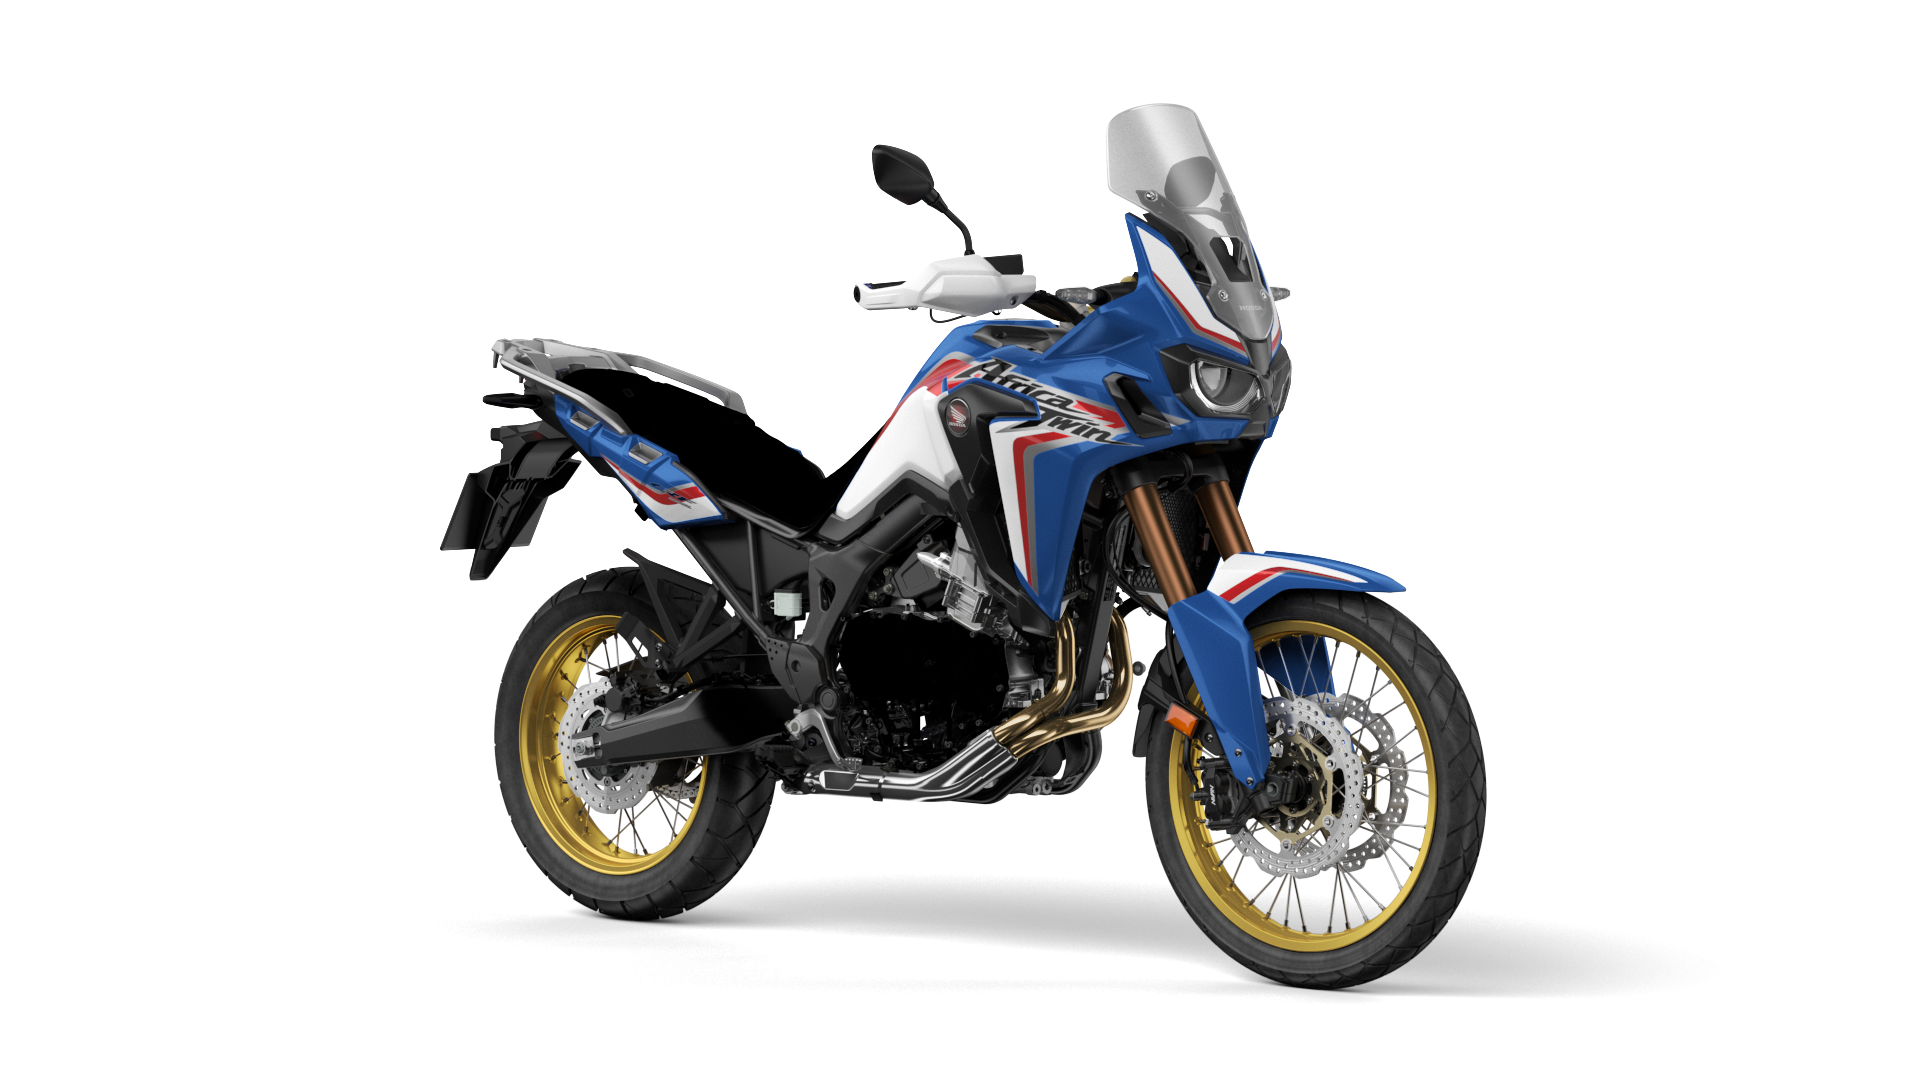 Africa Twin Specifications, Details & Pricing | Honda UK